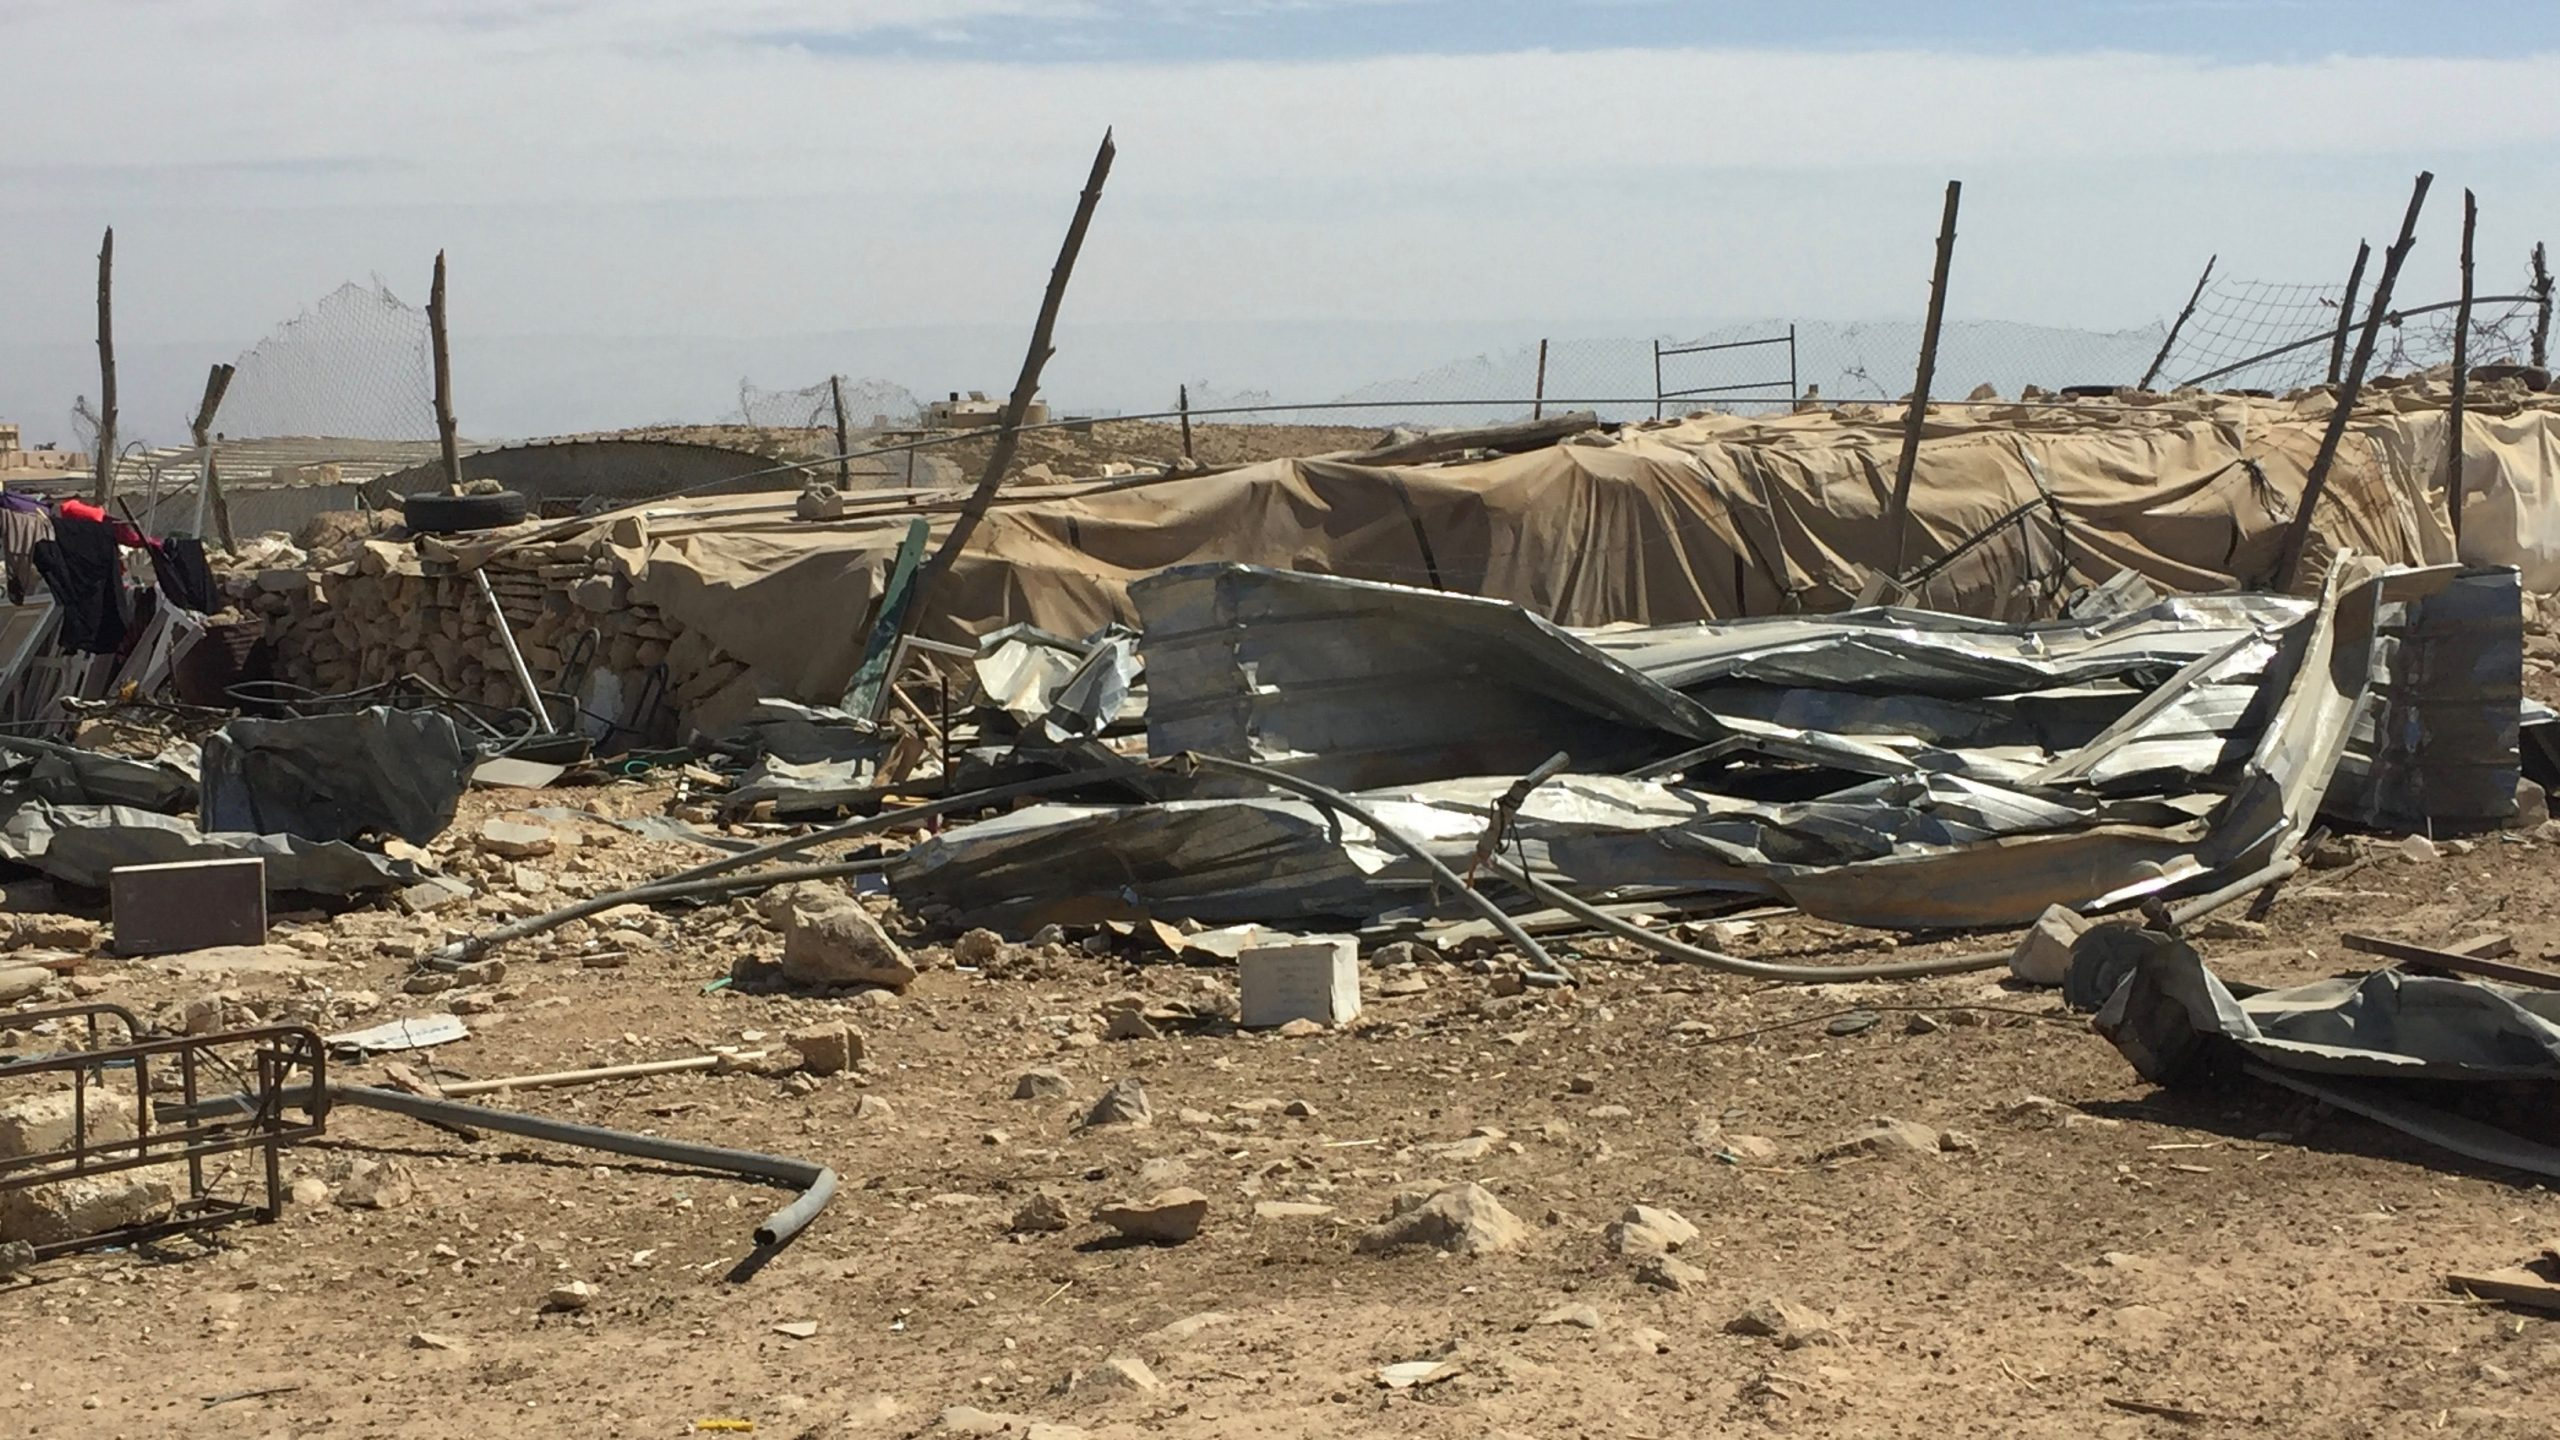 Israel demolishes Palestinian structures